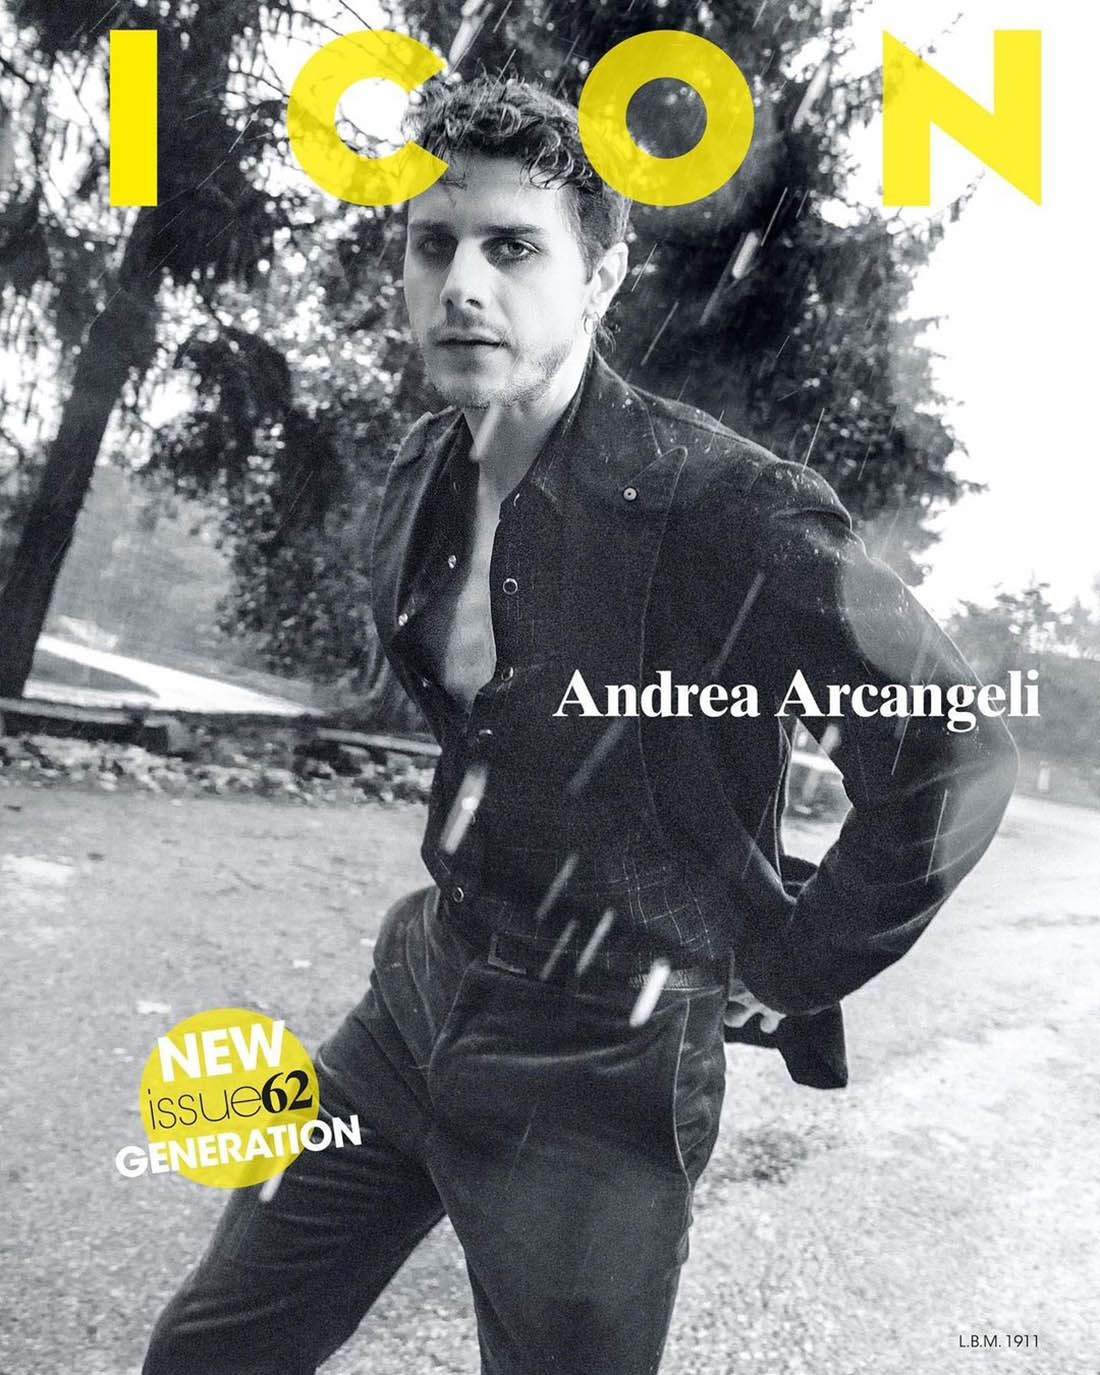 Andrea Arcangeli covers Icon Italia Issue 62 by Marco Imperatore